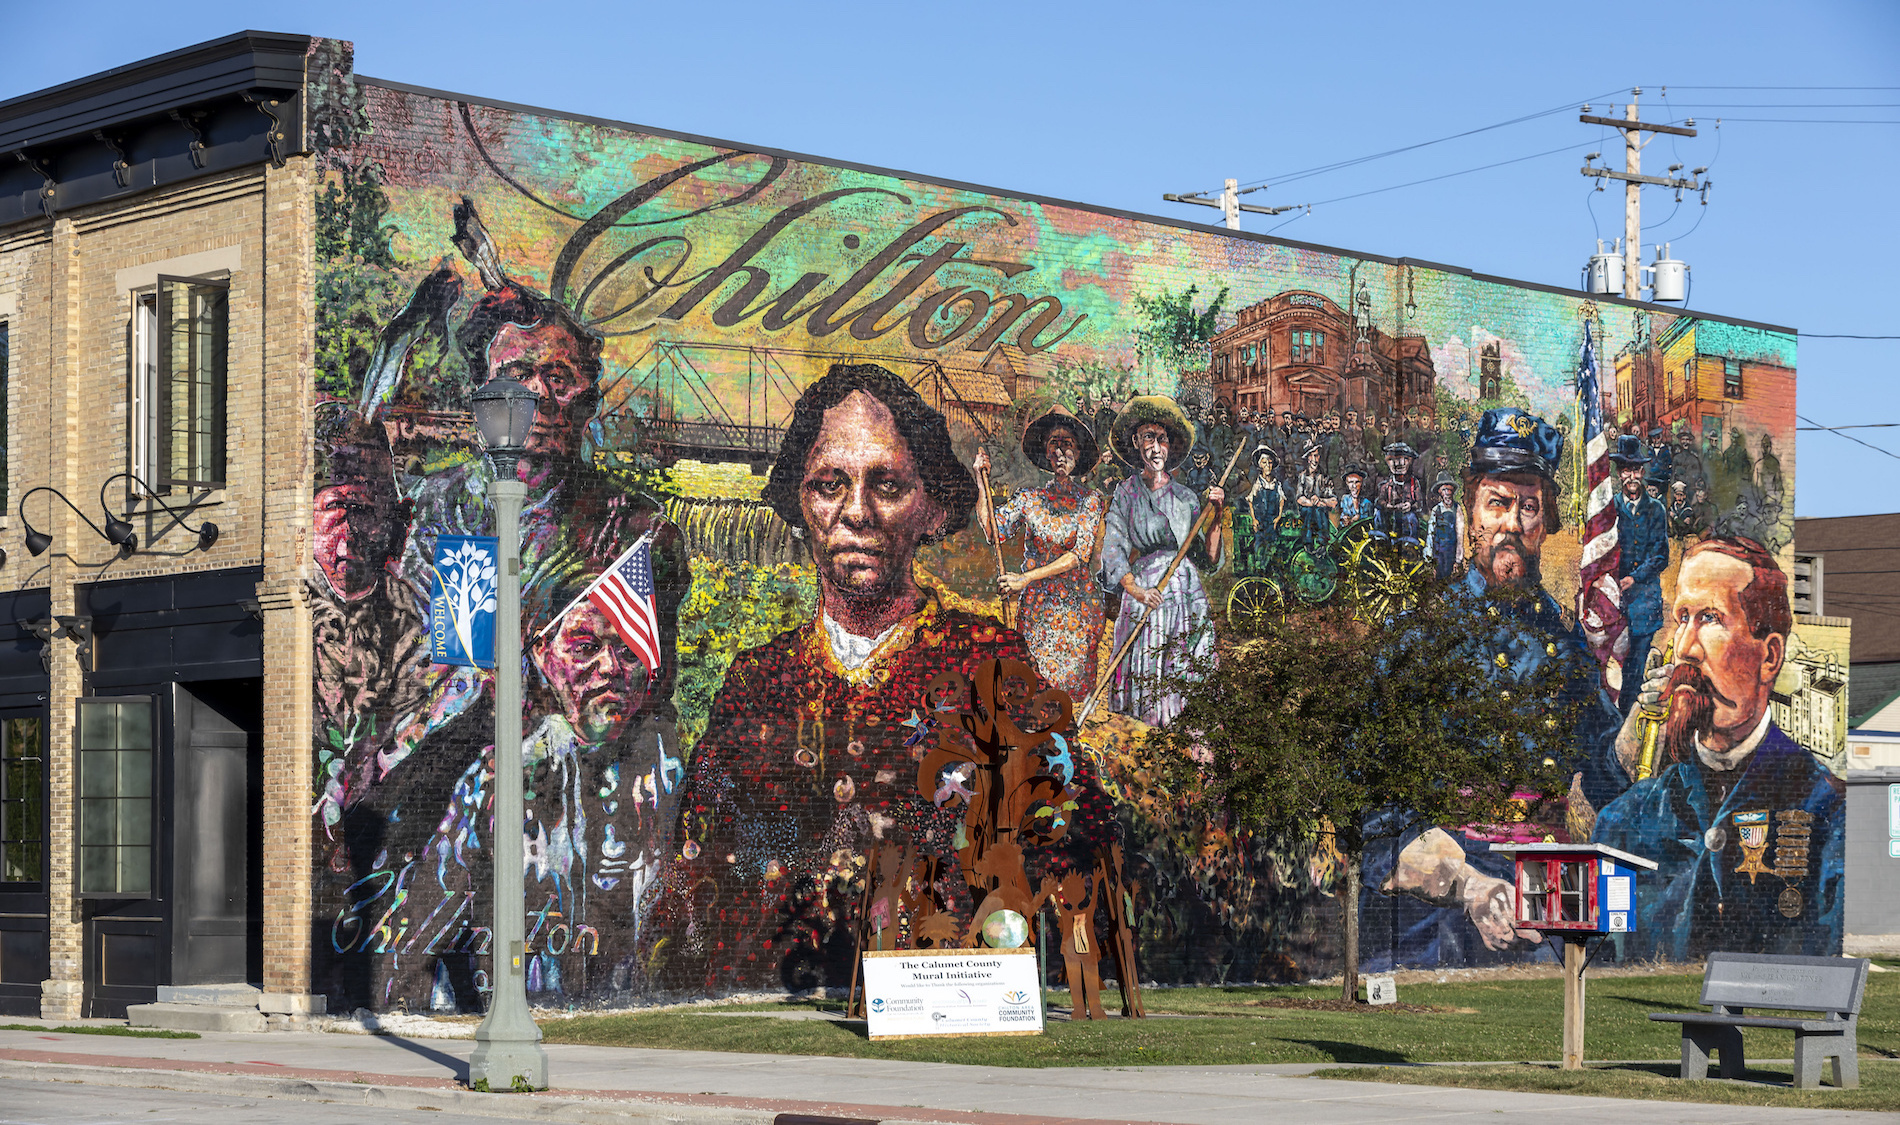 40 West Chilton Mural